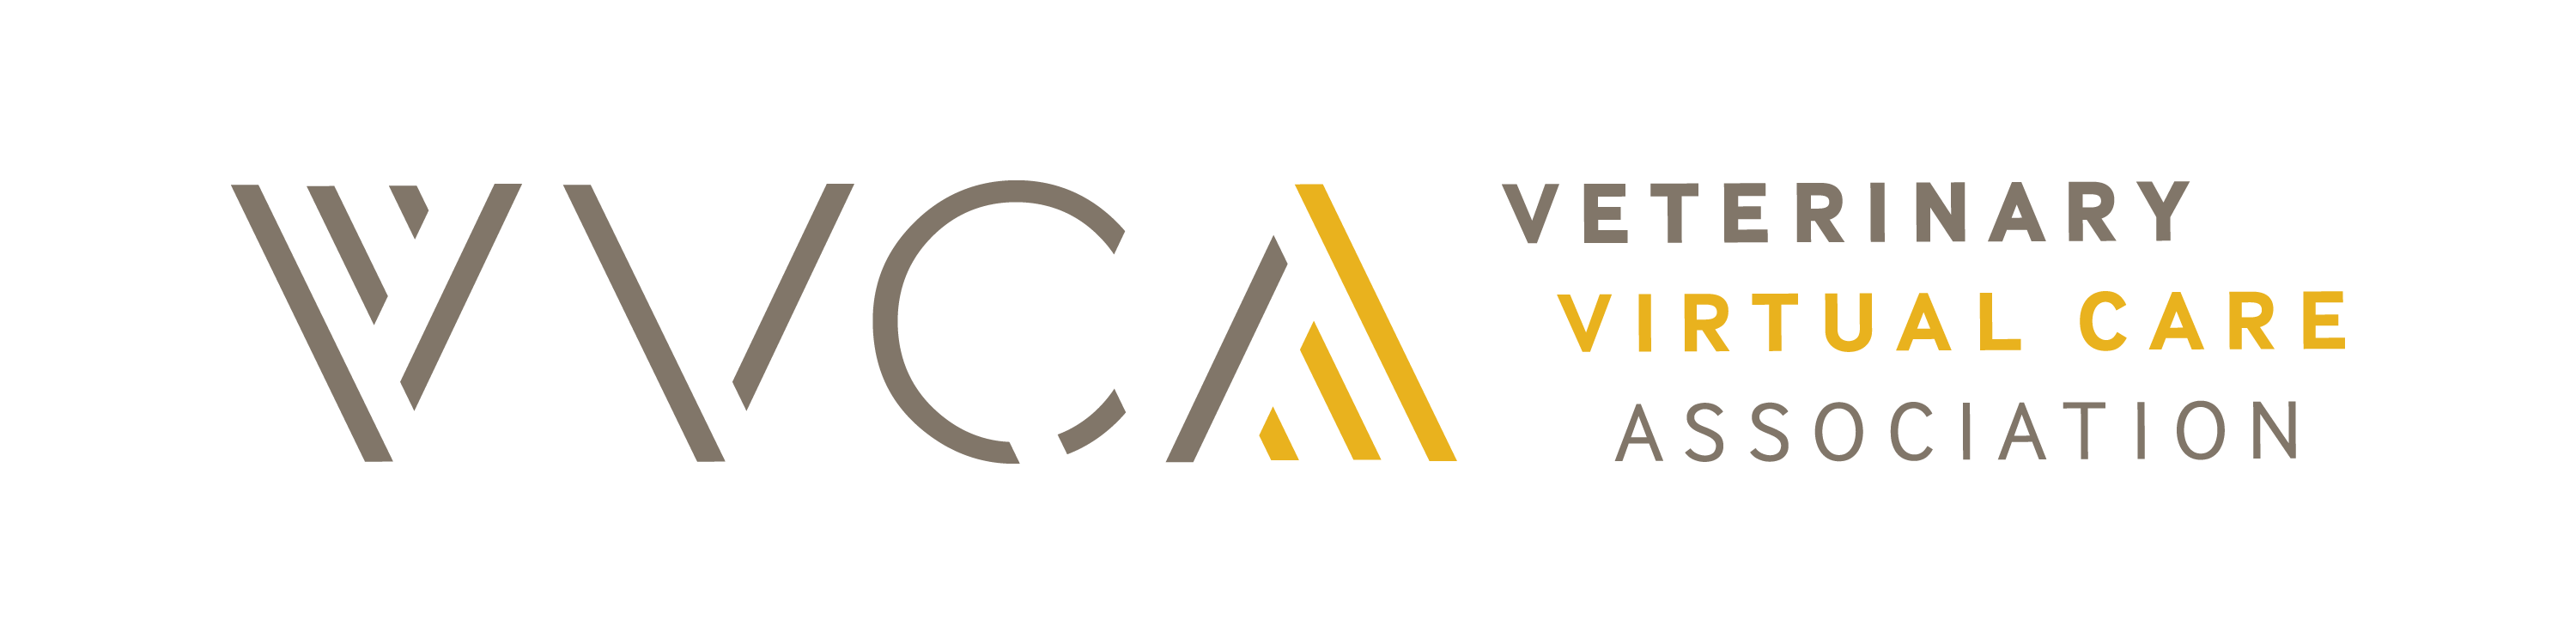 vvca_logo_color_full_horiz_LARGE